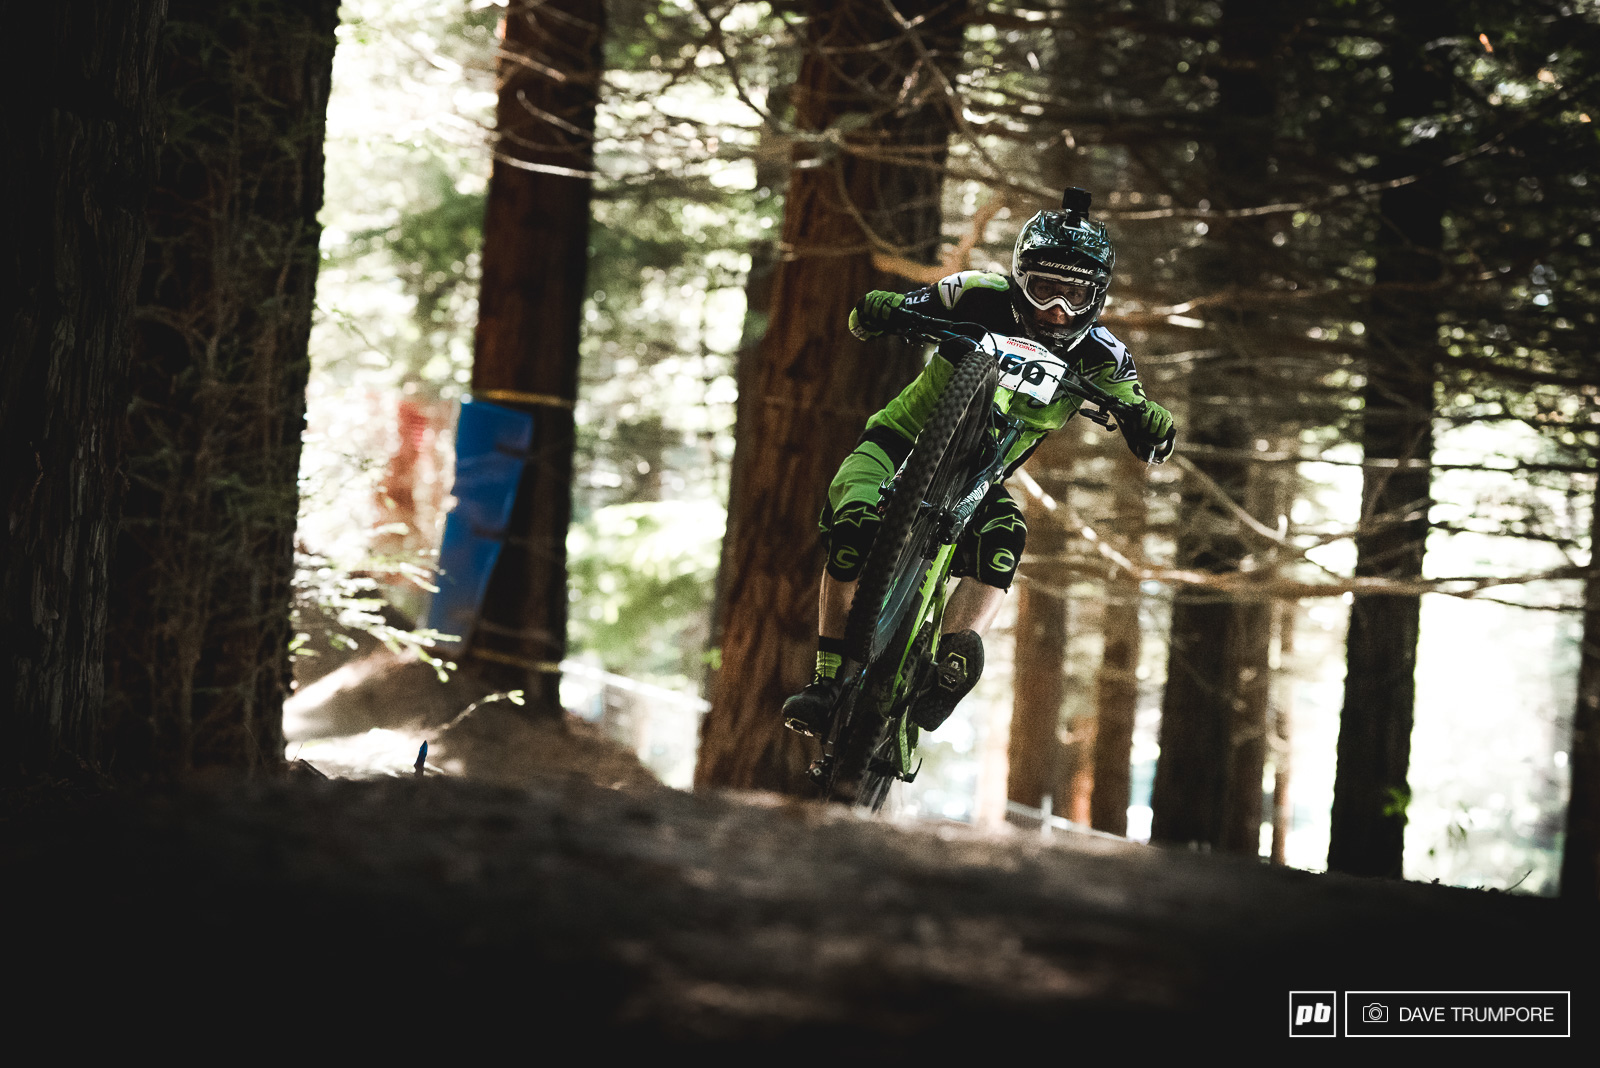 It s always good to see Jerome and some other EWS riders out shredding with style.